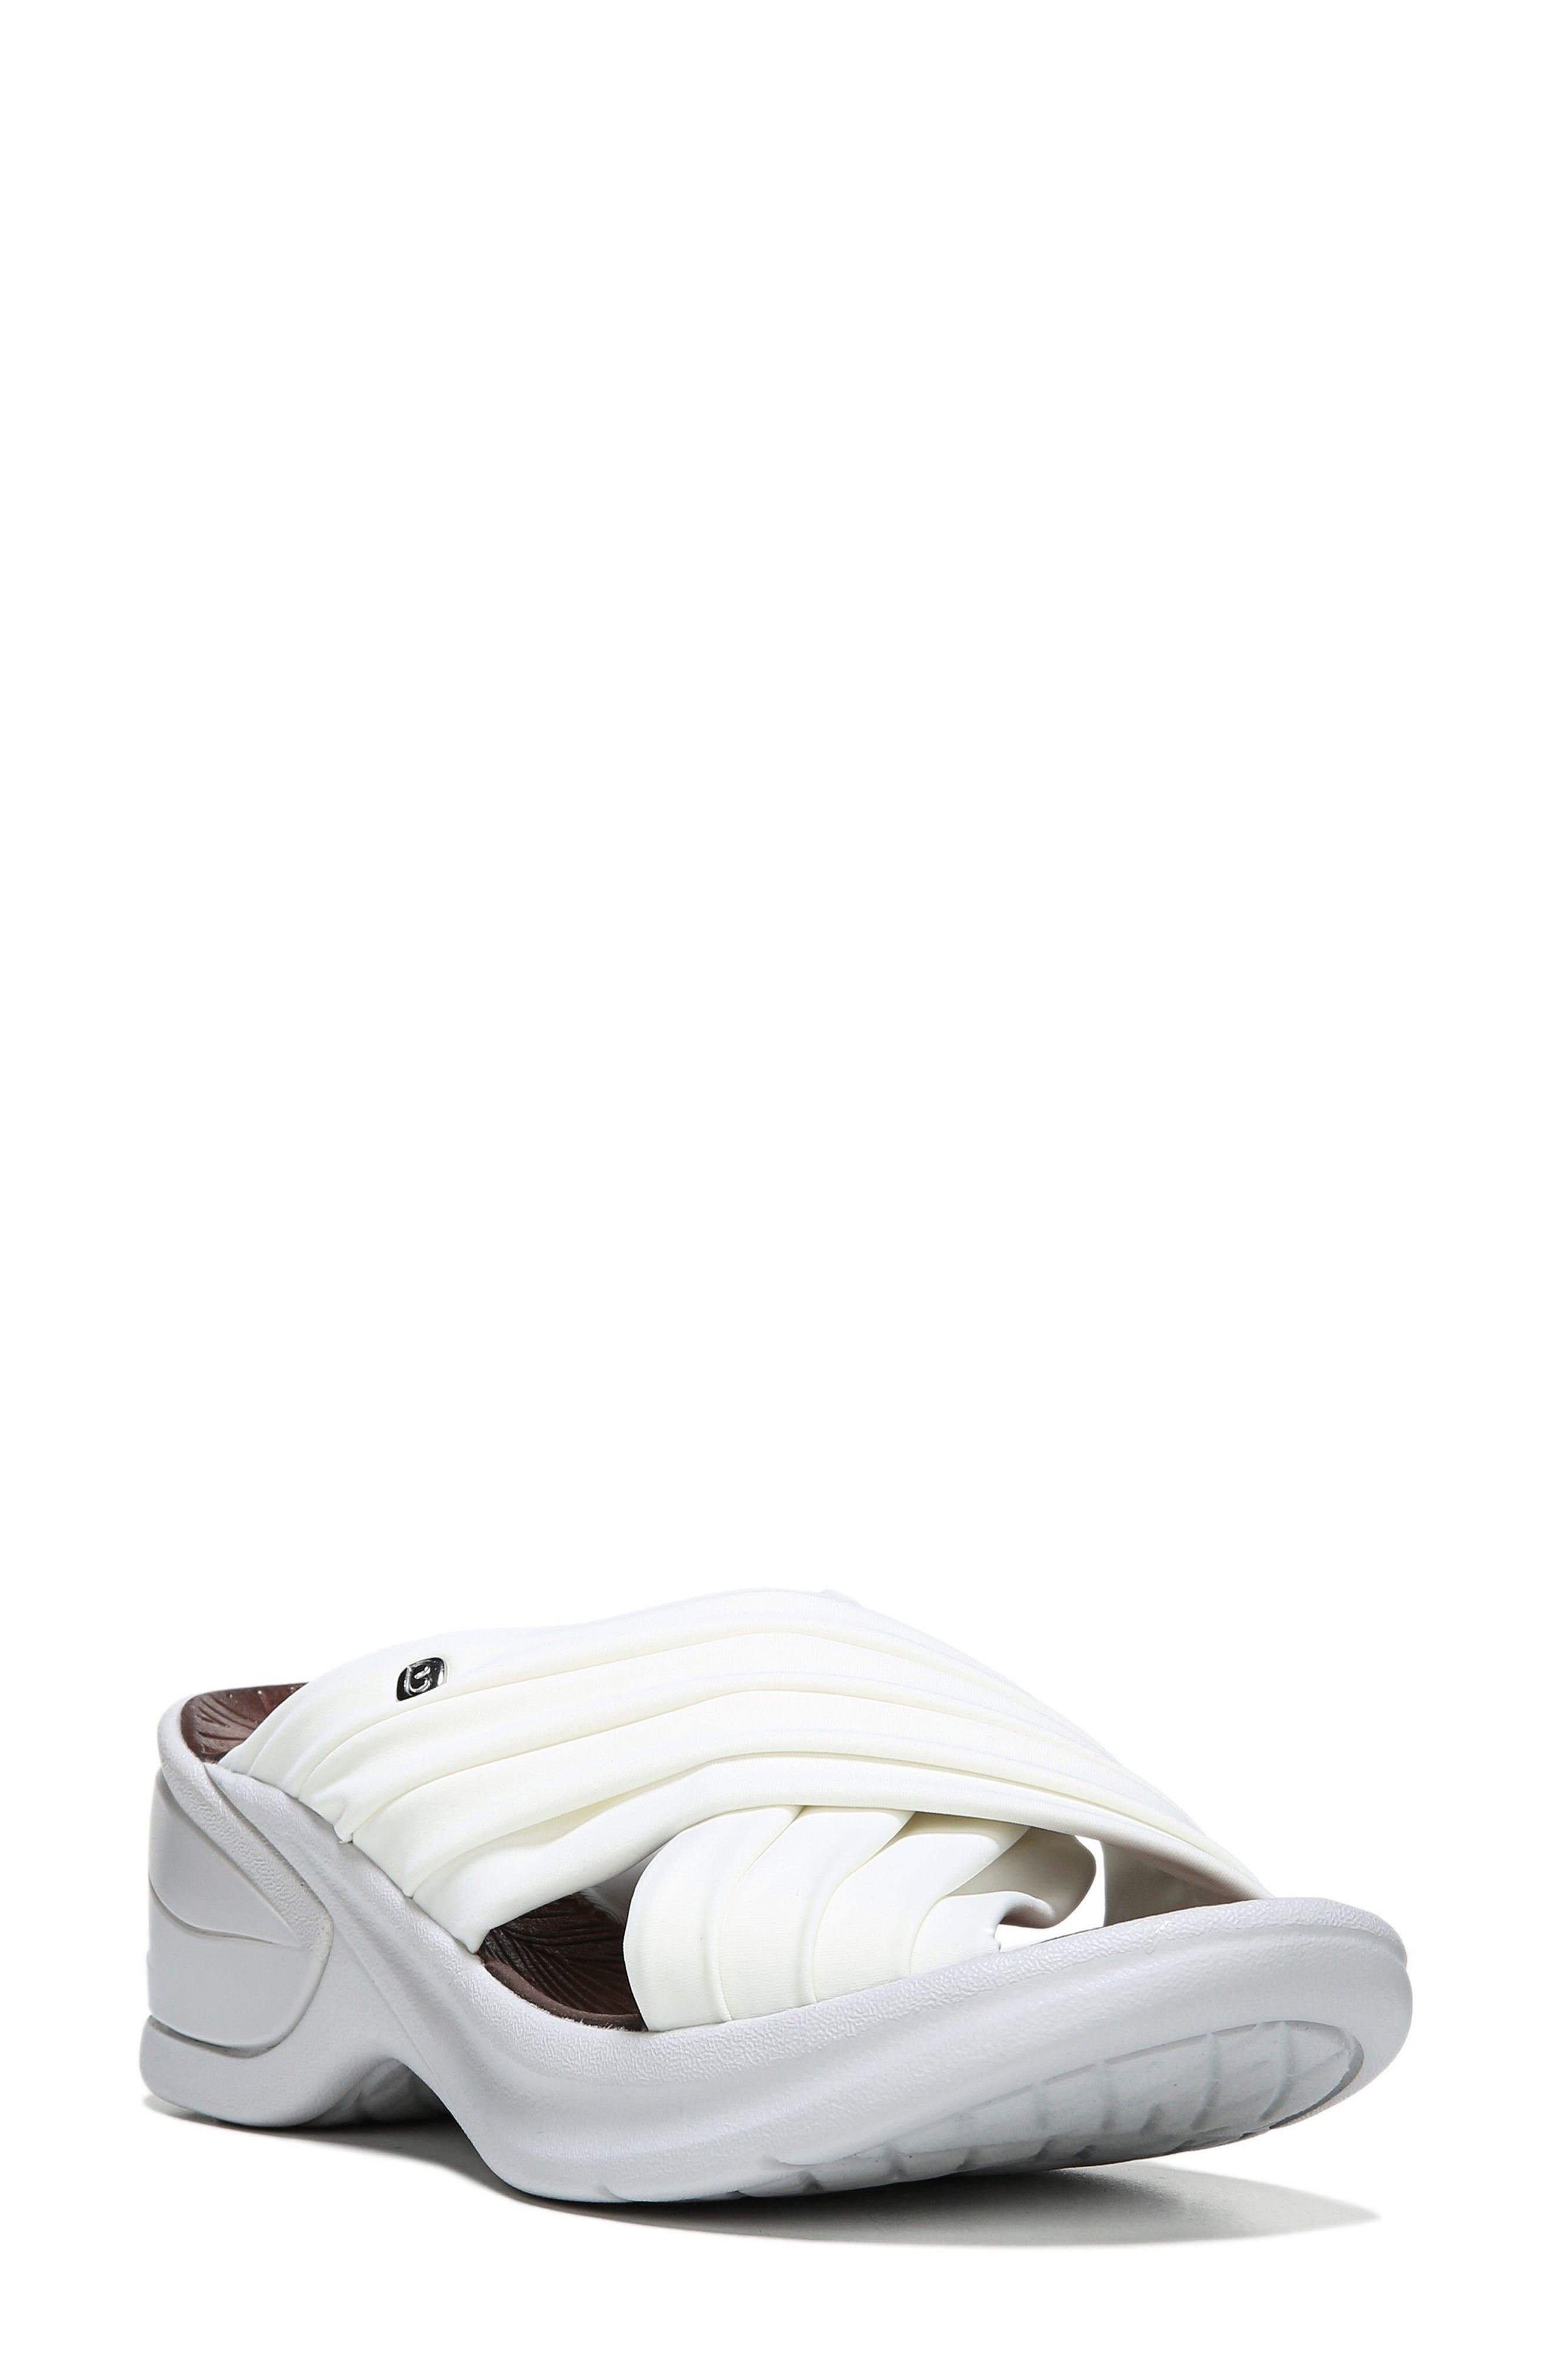 Knockout Slide Sandal,                         Main,                         color, WHITE FABRIC